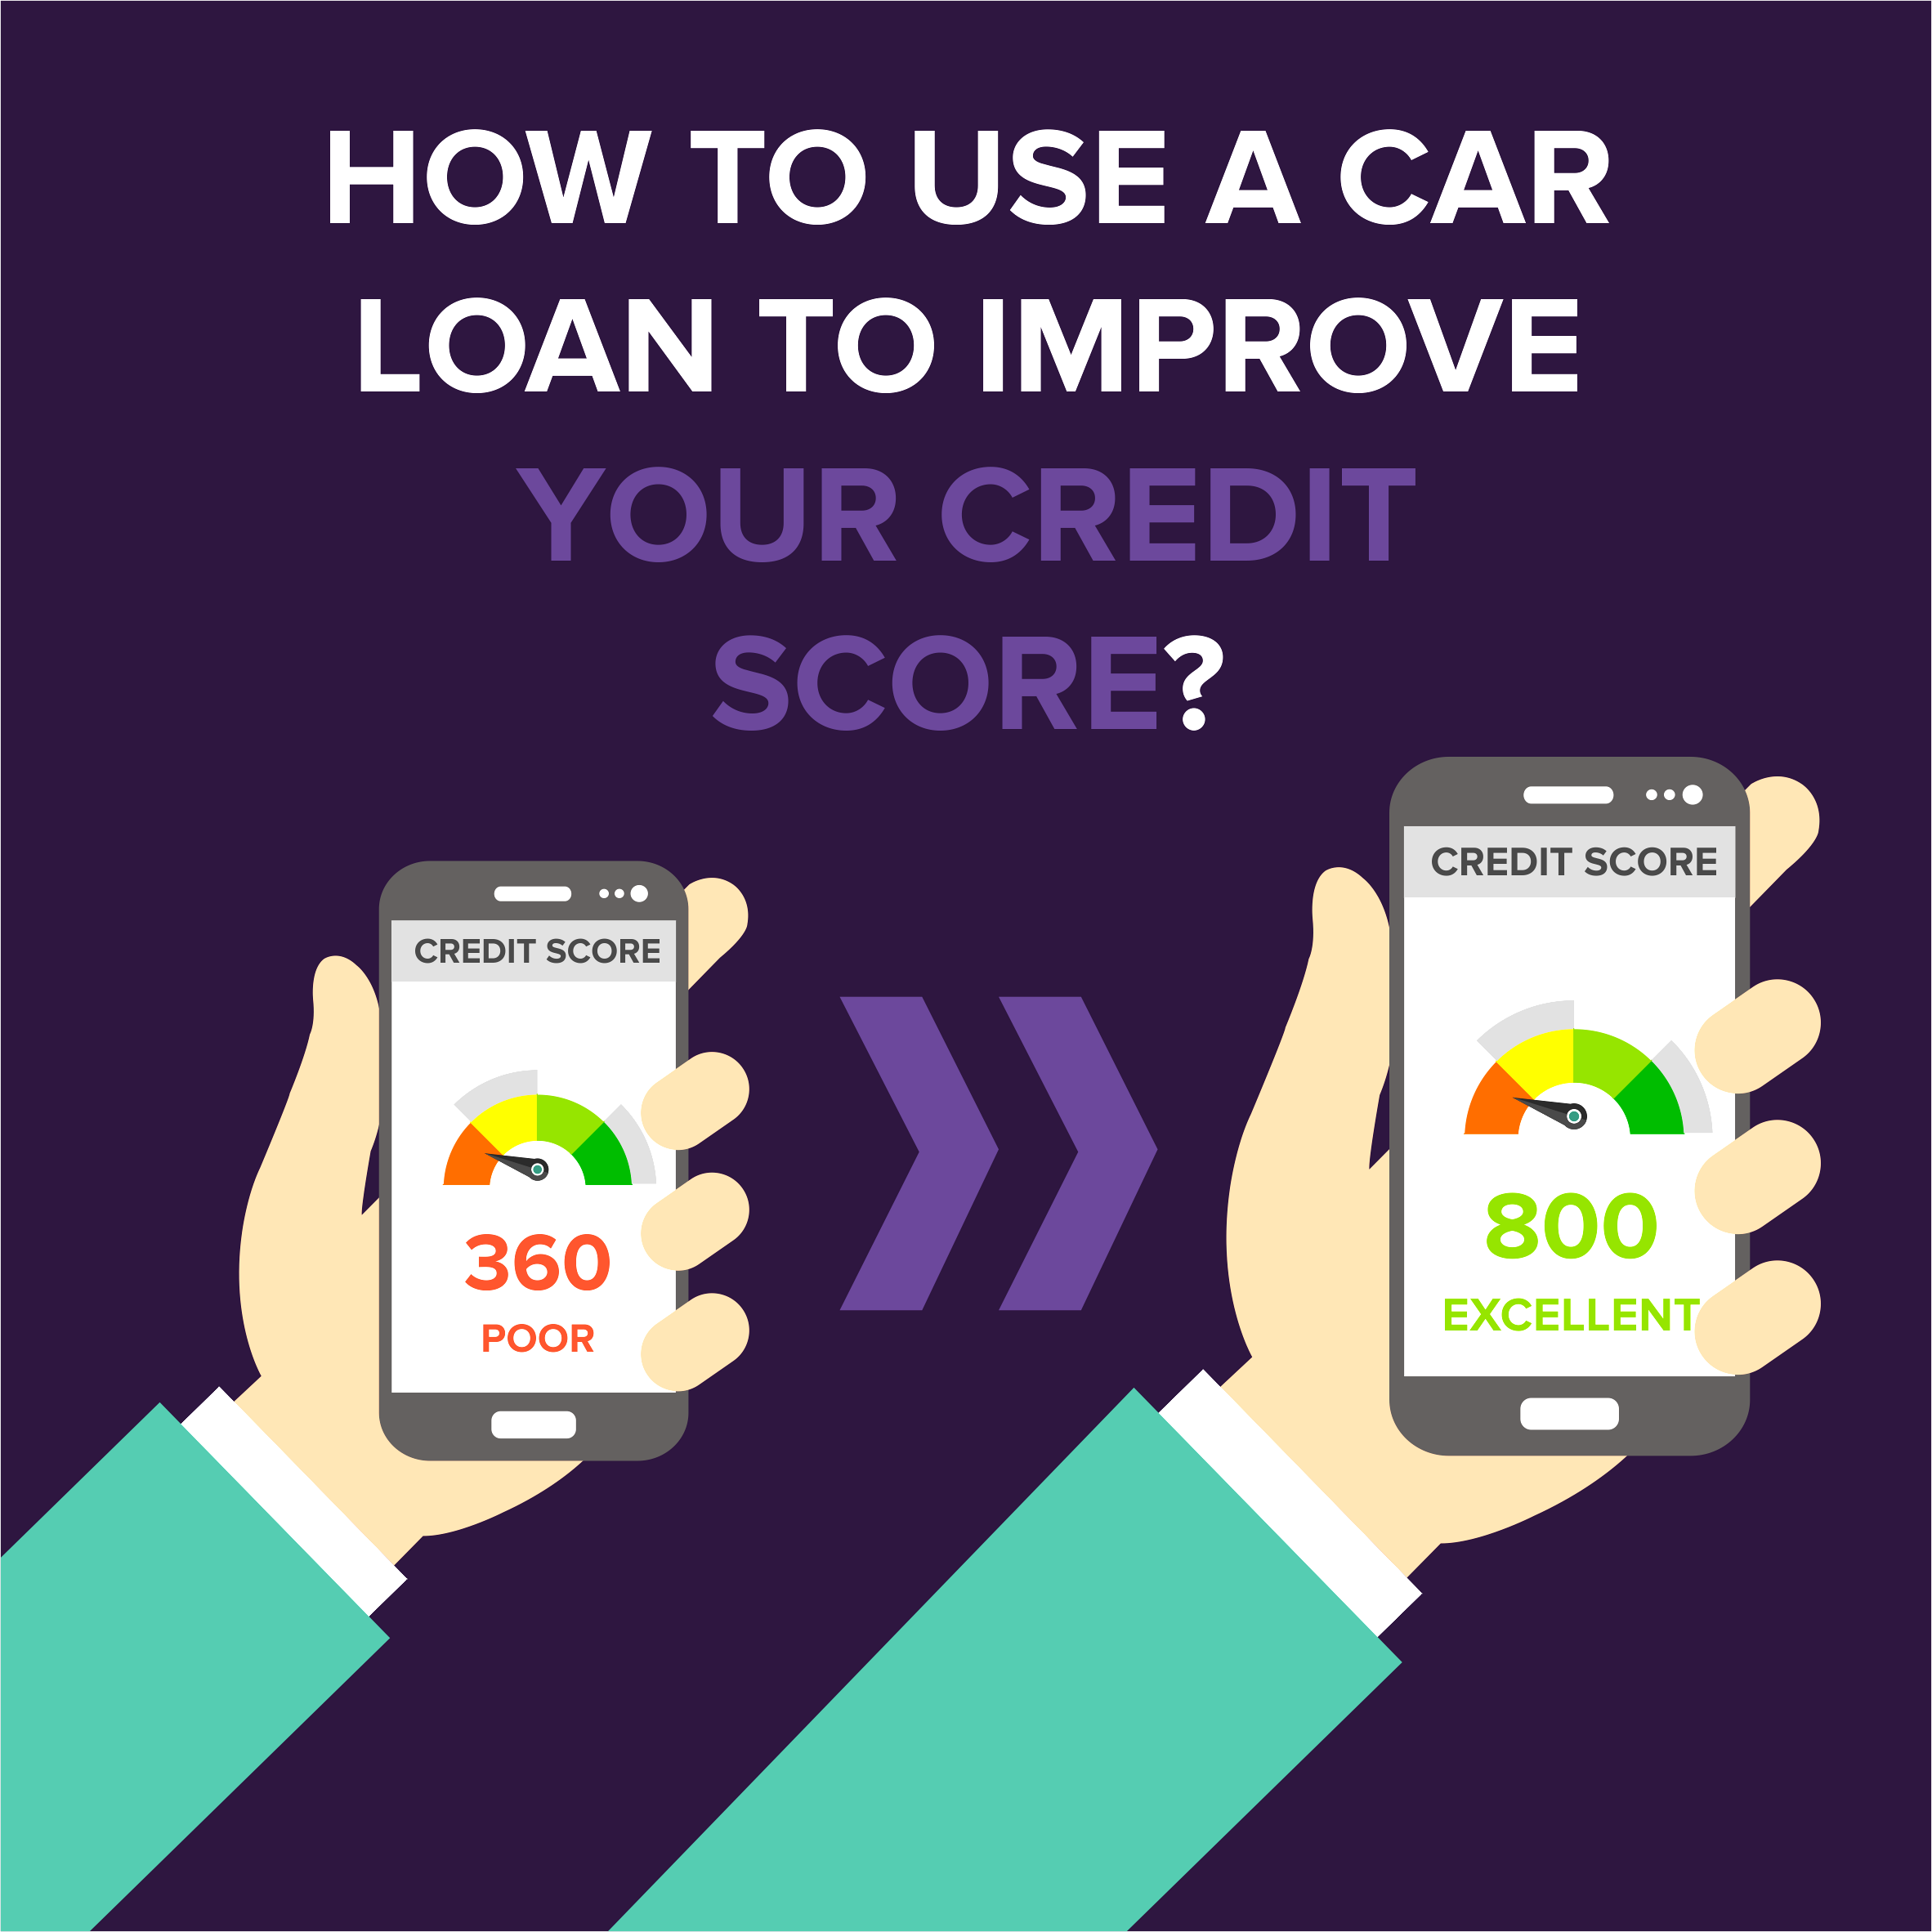 How You Can Use a Car Loan to Improve Your Credit Score